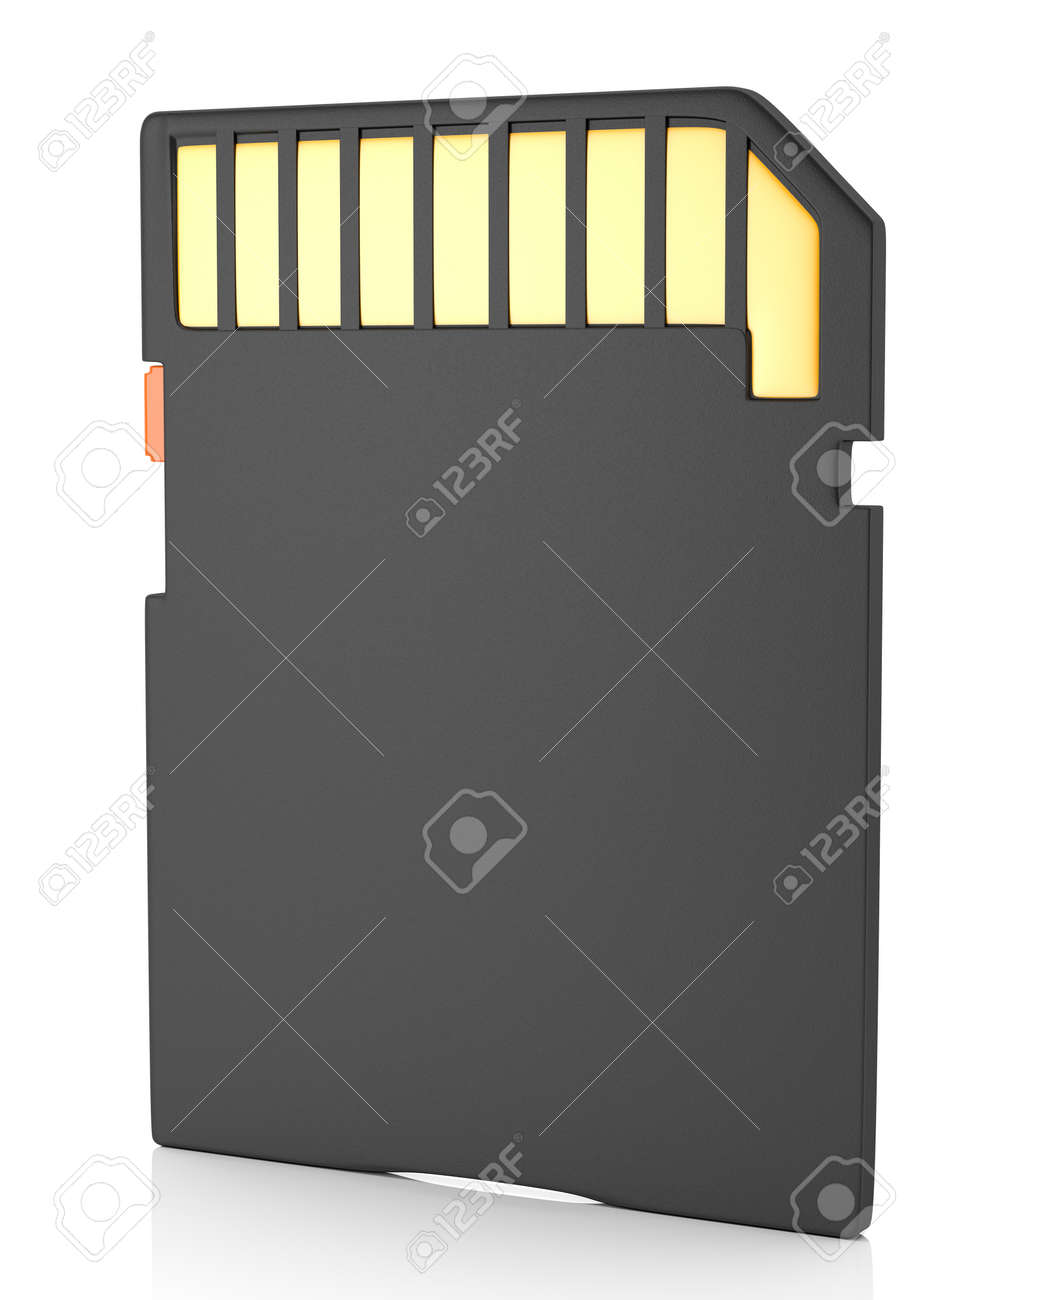 Memory flash card isolated on white background 3d illustration - 23843166